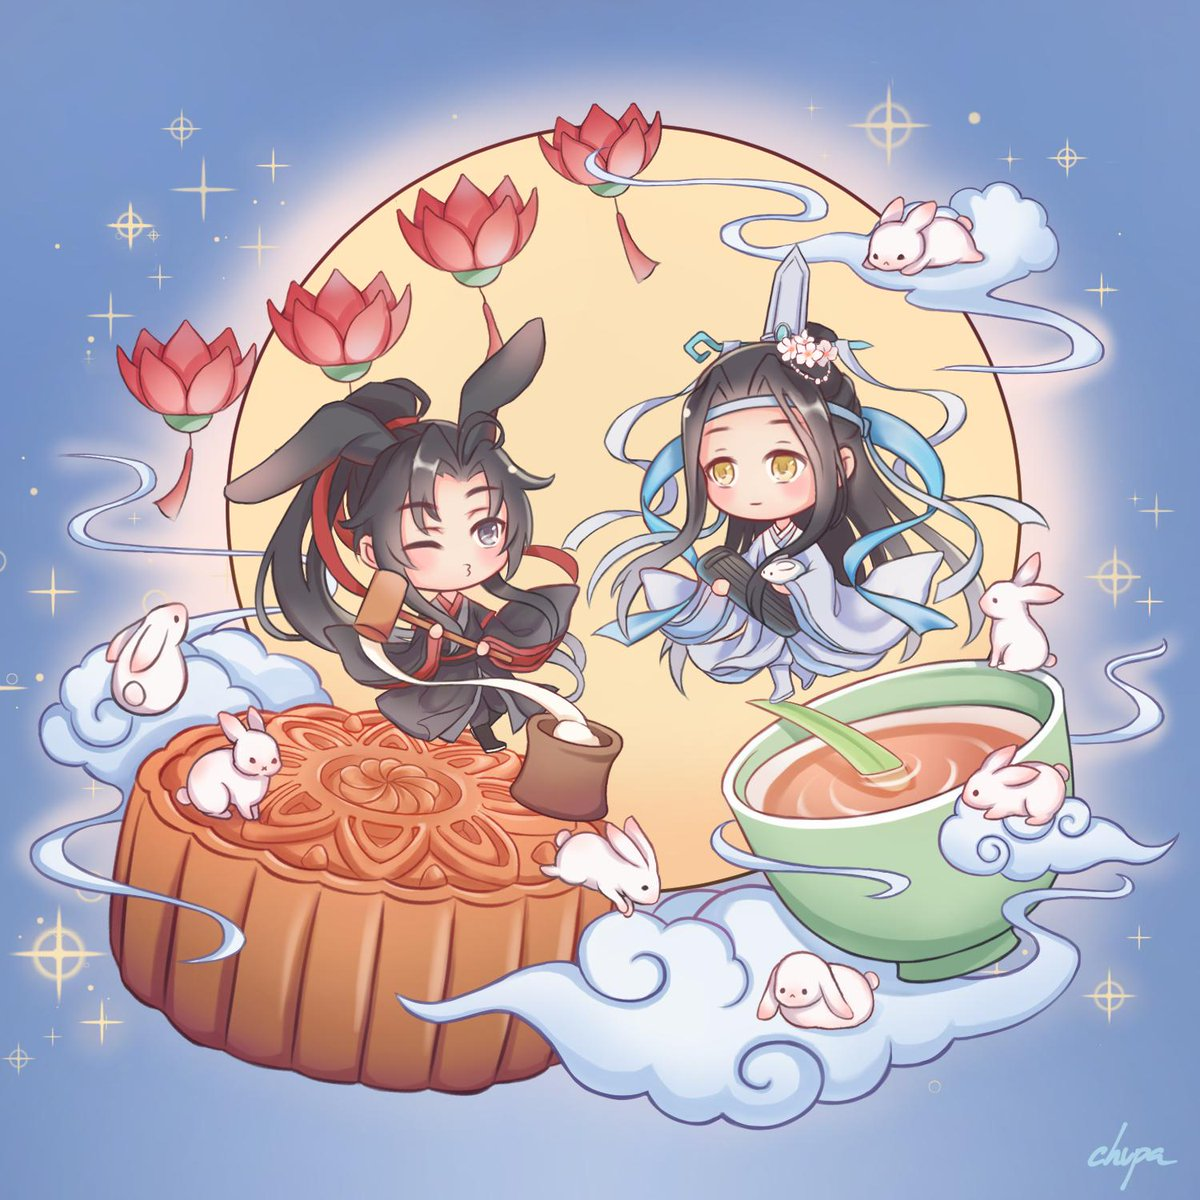 happy mid-autumn festival with chang'e lwj and moon bunny wwx 🐰🌕 #魔道祖师 #MoDaoZuShi #wangxian #忘羡